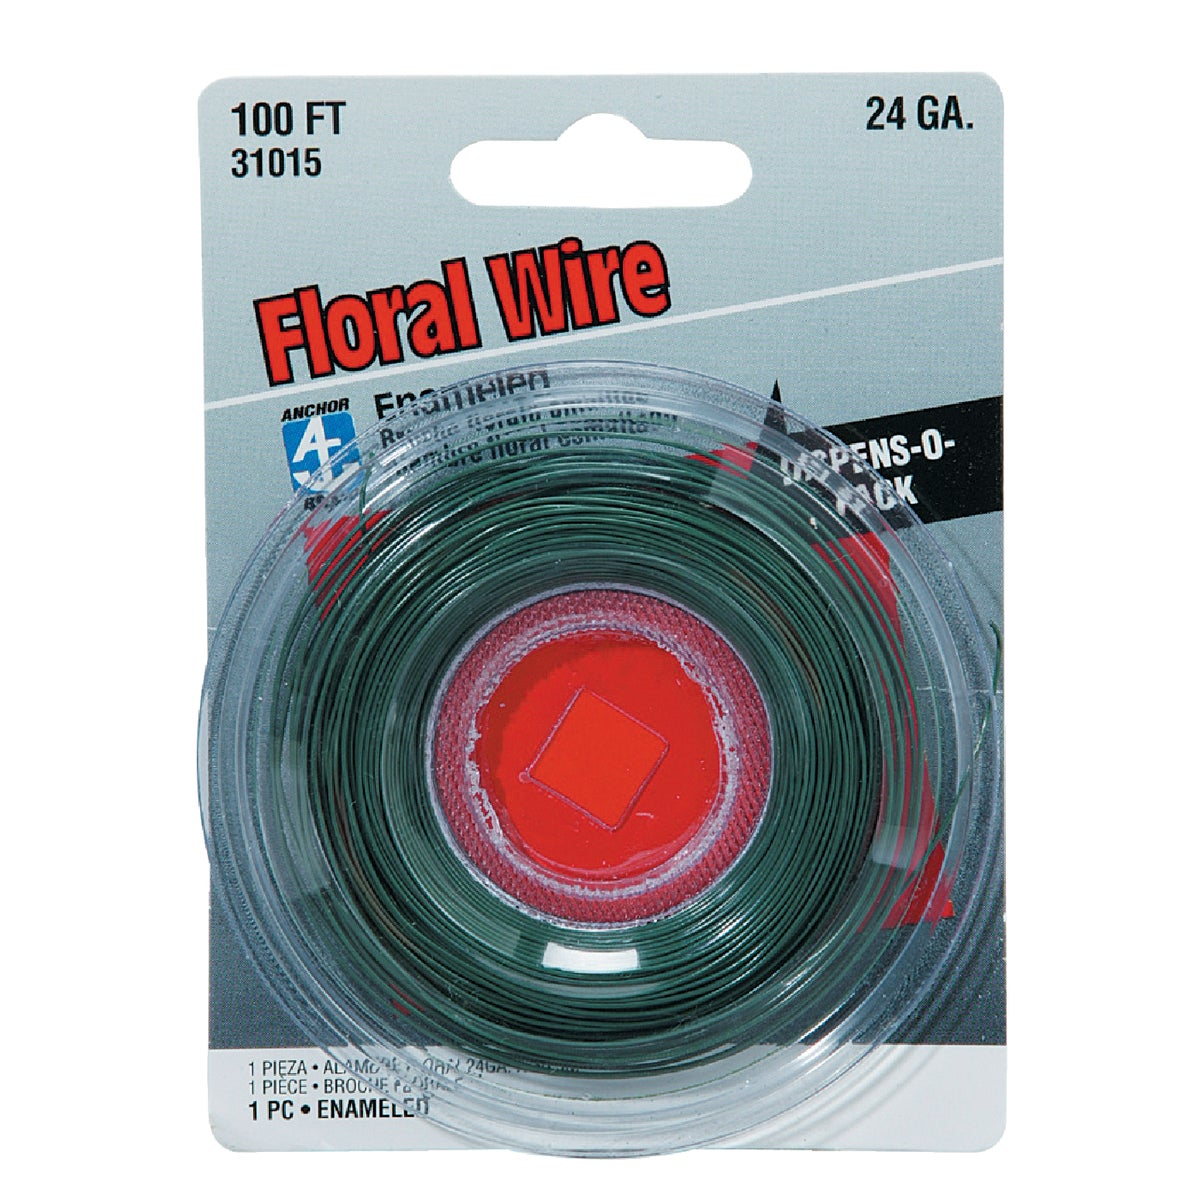 100' FLORAL WIRE